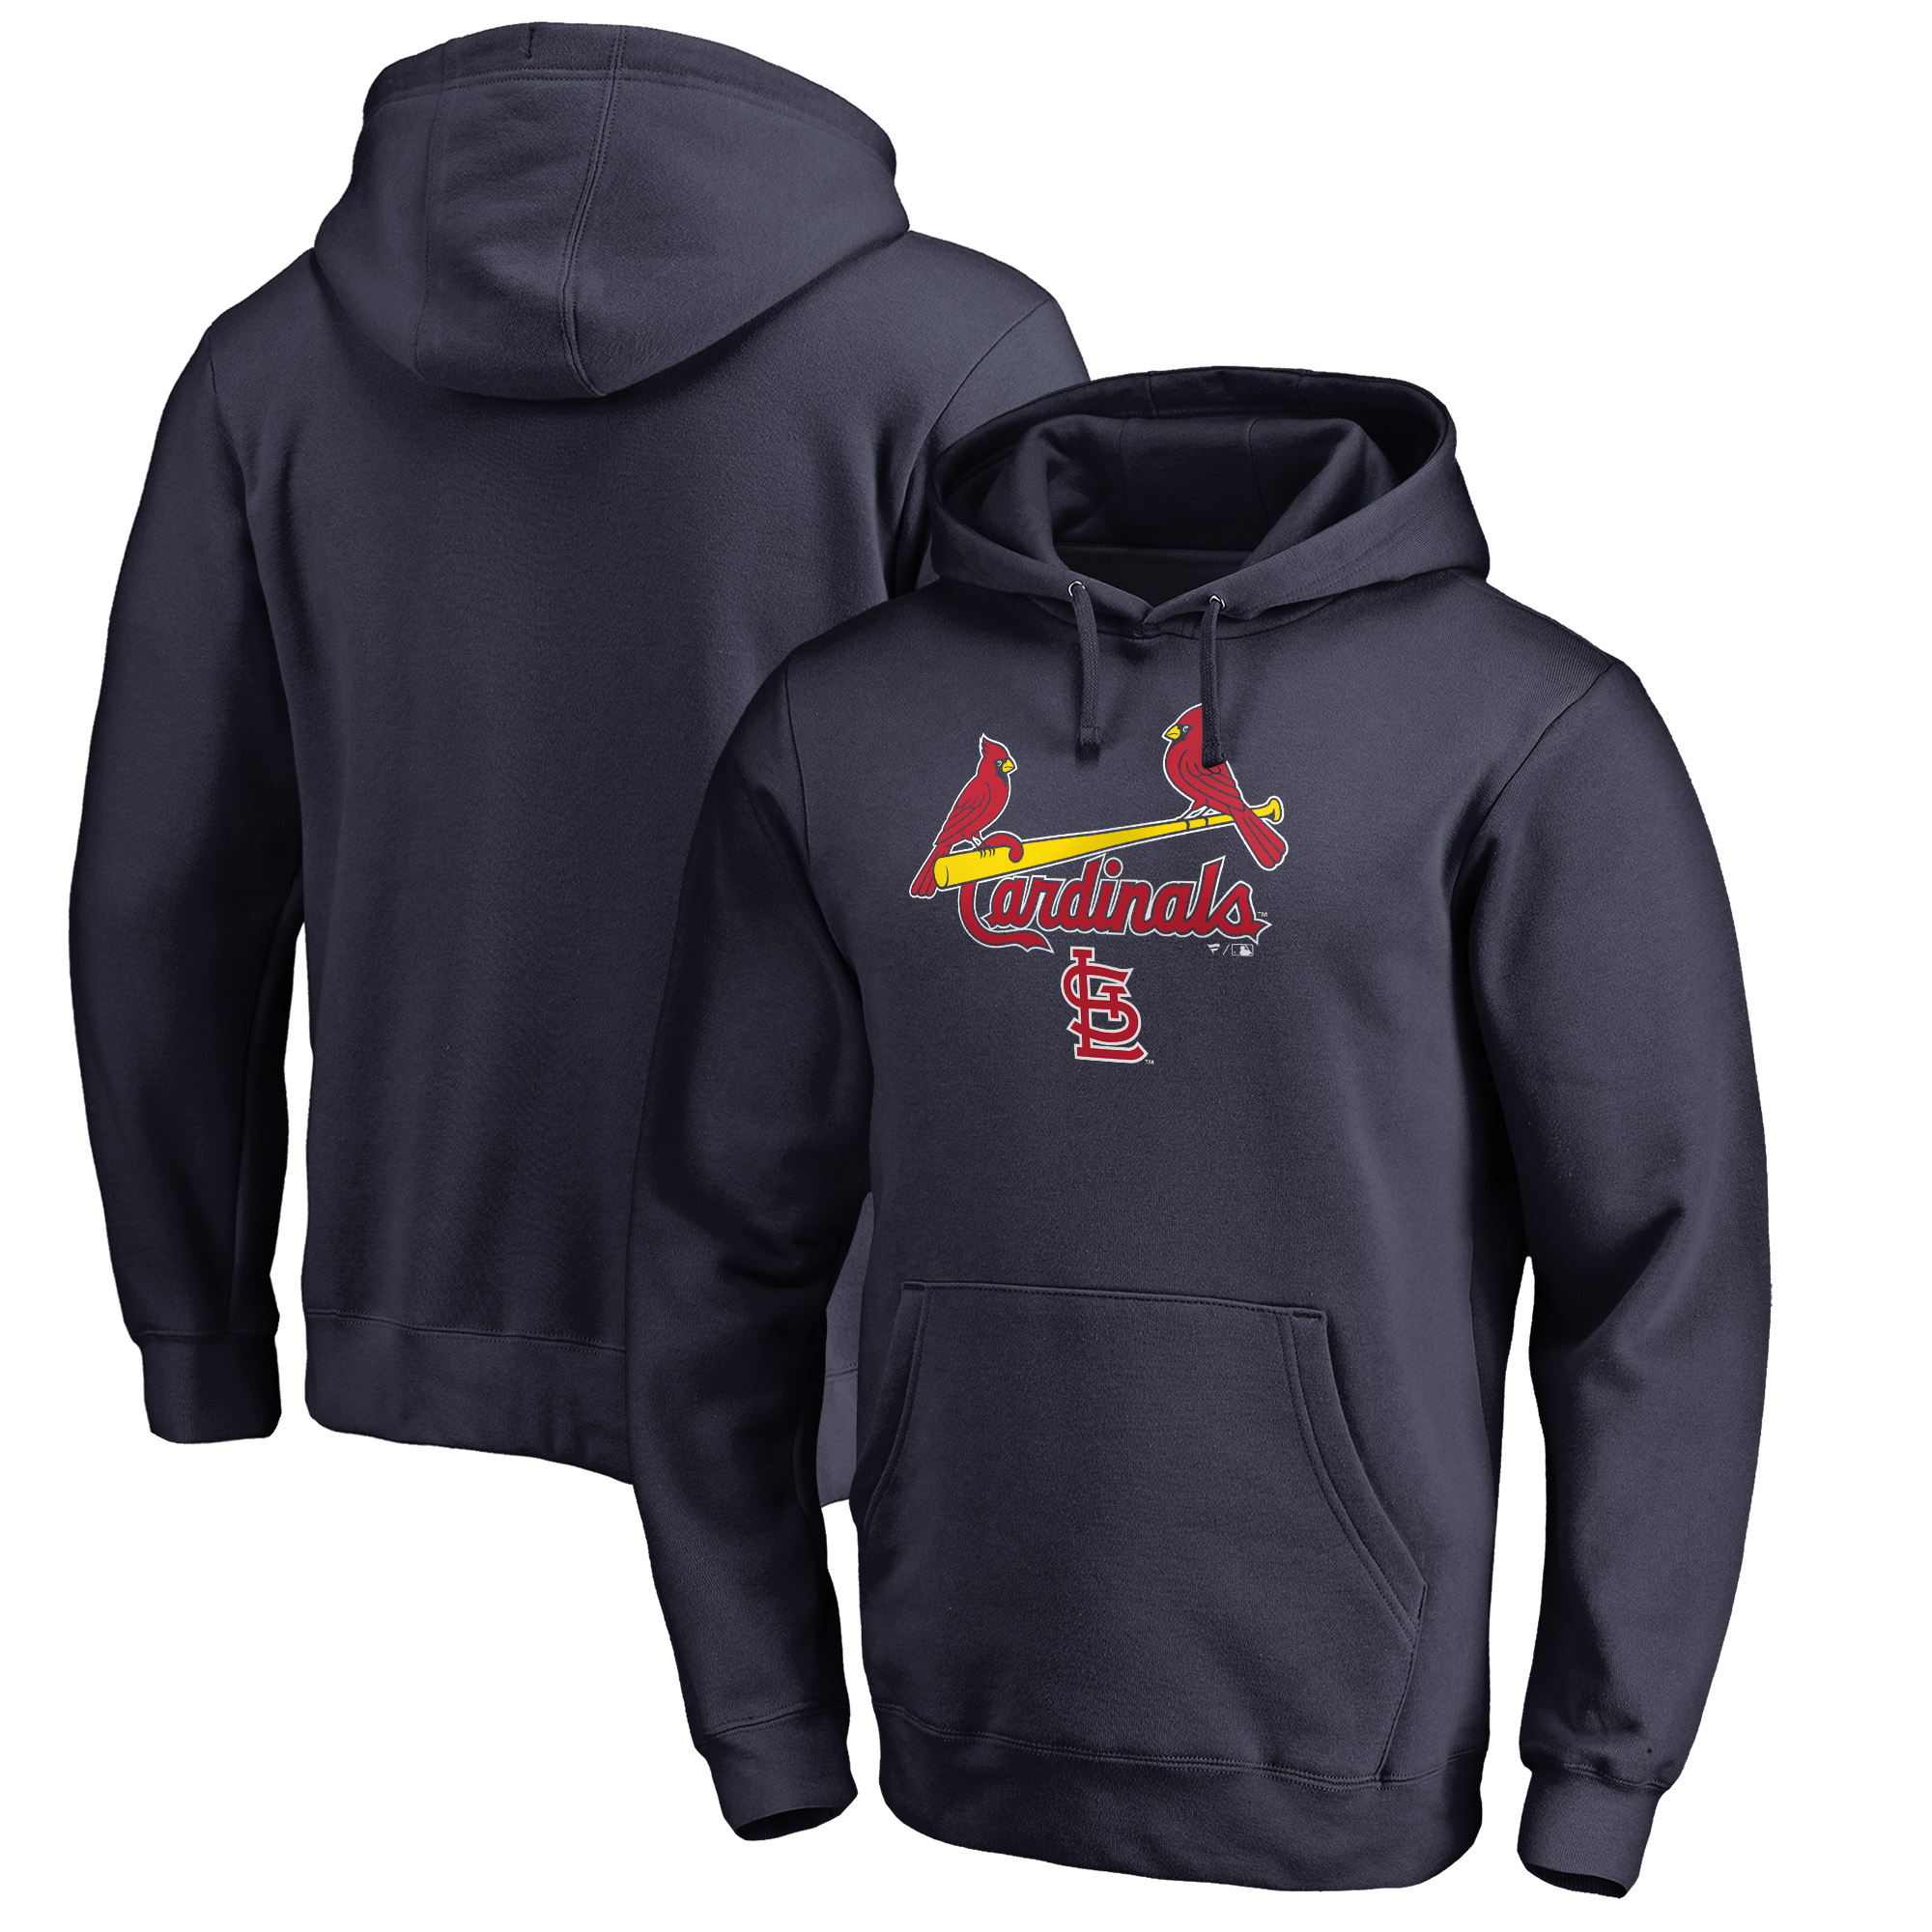 St. Louis Cardinals Fanatics Branded Big & Tall Team Lockup Pullover Hoodie - Navy